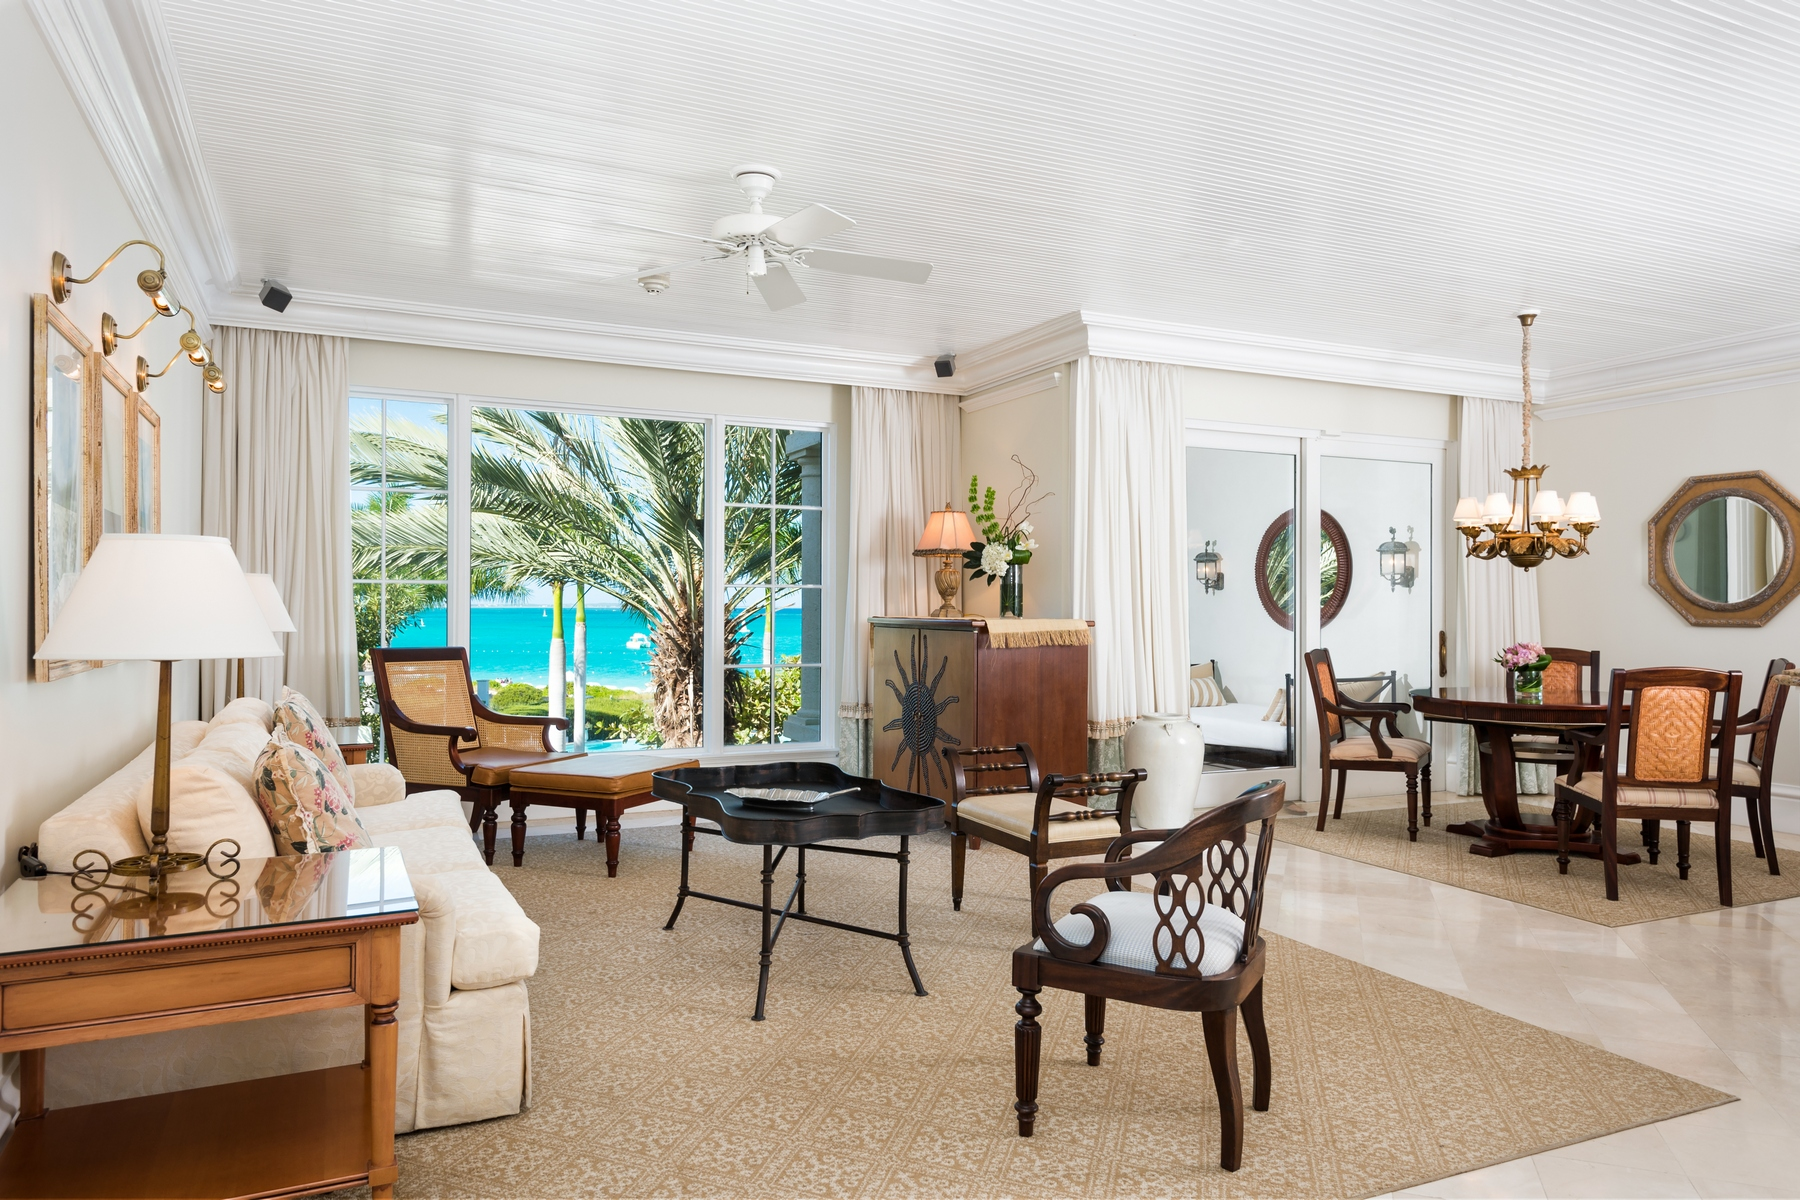 Condominium for Sale at The Palms Turks and Caicos - Suite 2303.04 Beachfront Grace Bay, Providenciales TC Turks And Caicos Islands